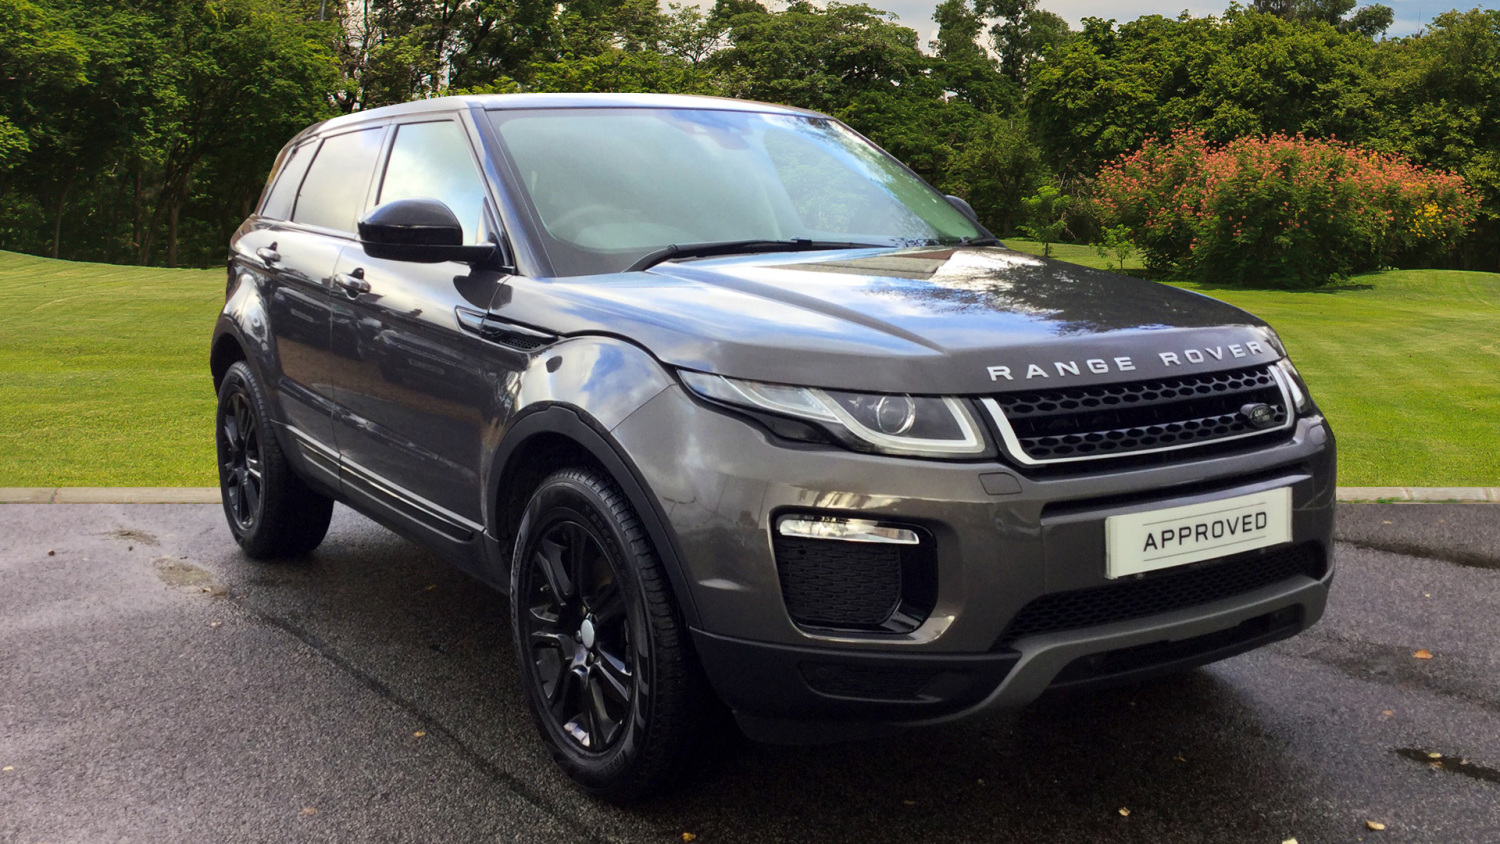 used land rover range rover evoque 2 0 td4 se tech 5dr diesel hatchback for sale bristol. Black Bedroom Furniture Sets. Home Design Ideas